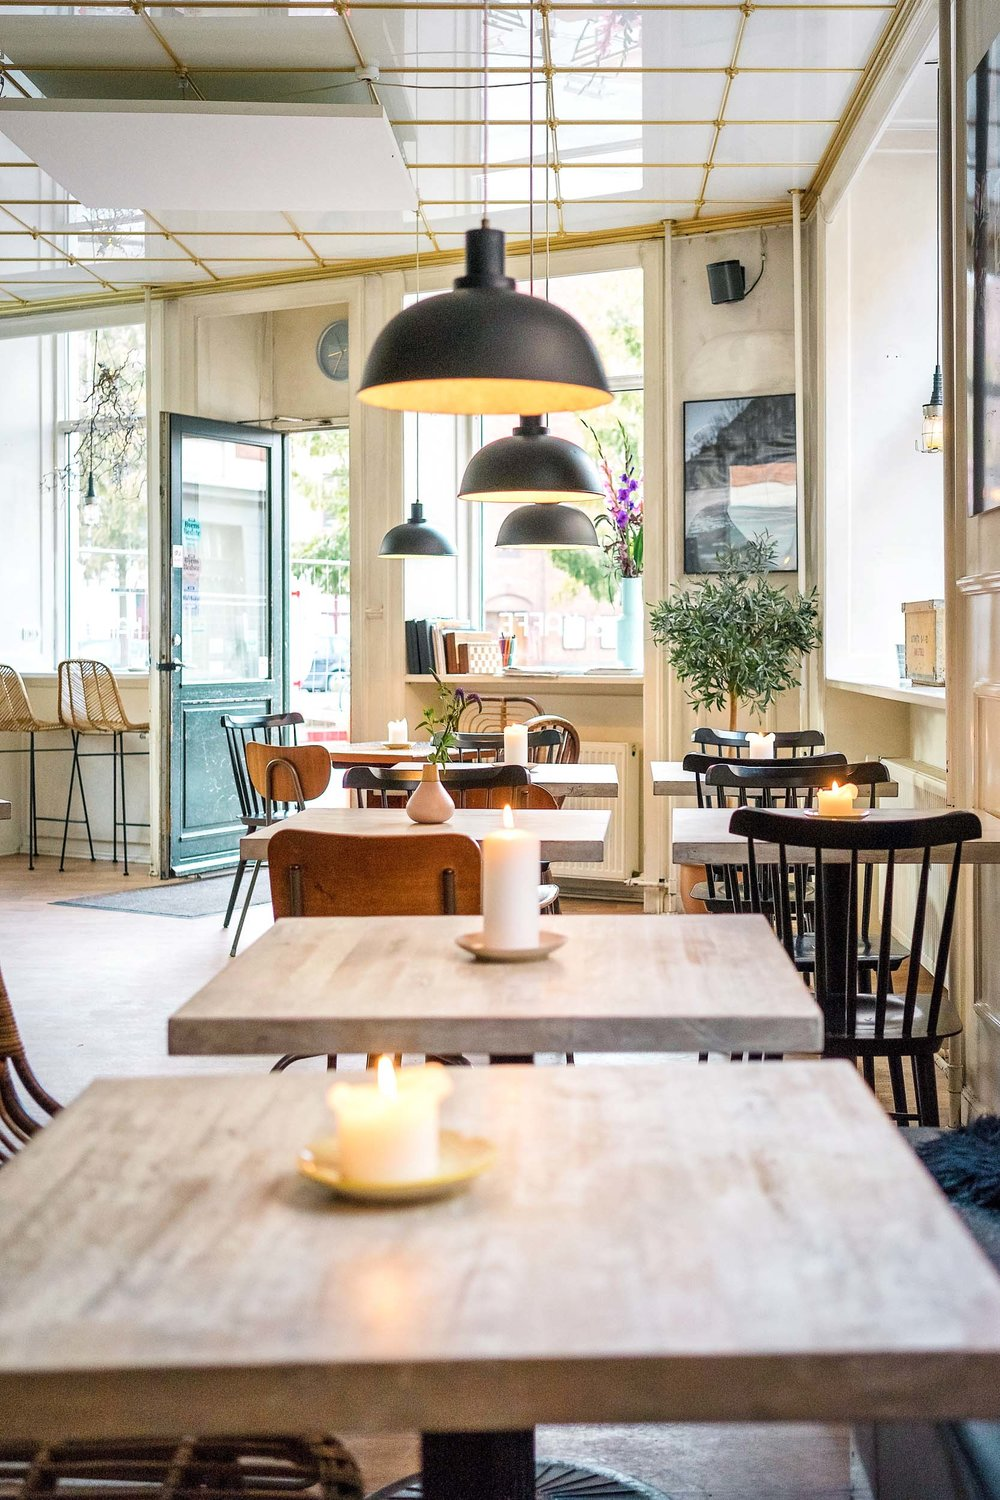 The best brunch in Copenhagen: Mad & Kaffe in Vesterbro